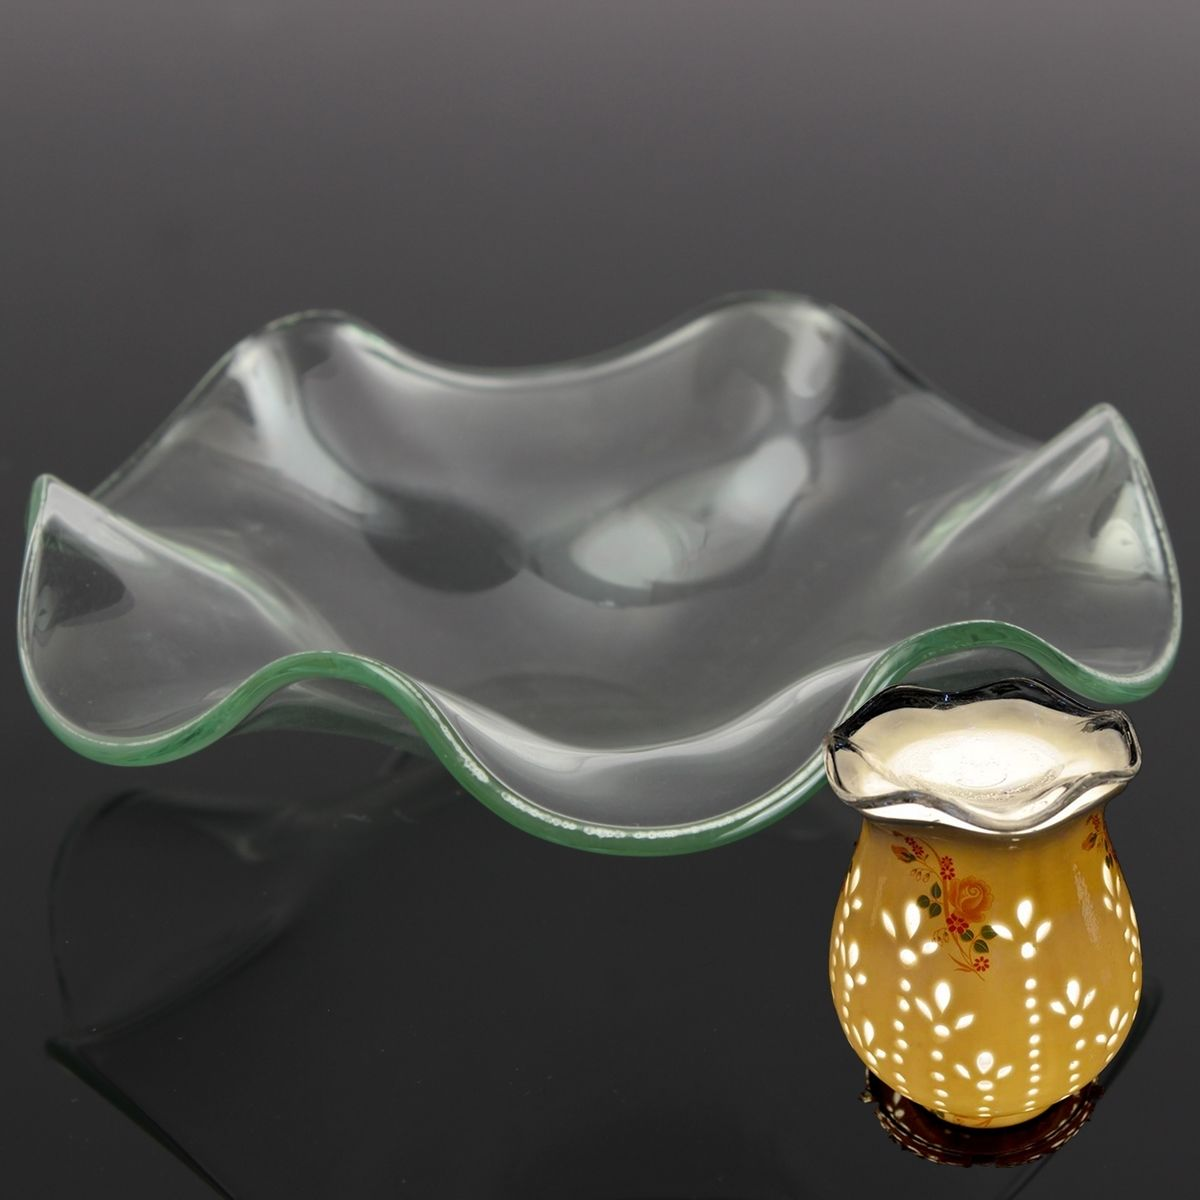 Lotus Shaped Electric Aroma Fragrance Dish Diffuser Lamp Oil Tart ... for Electric Fragrance Diffuser Lamp  104xkb